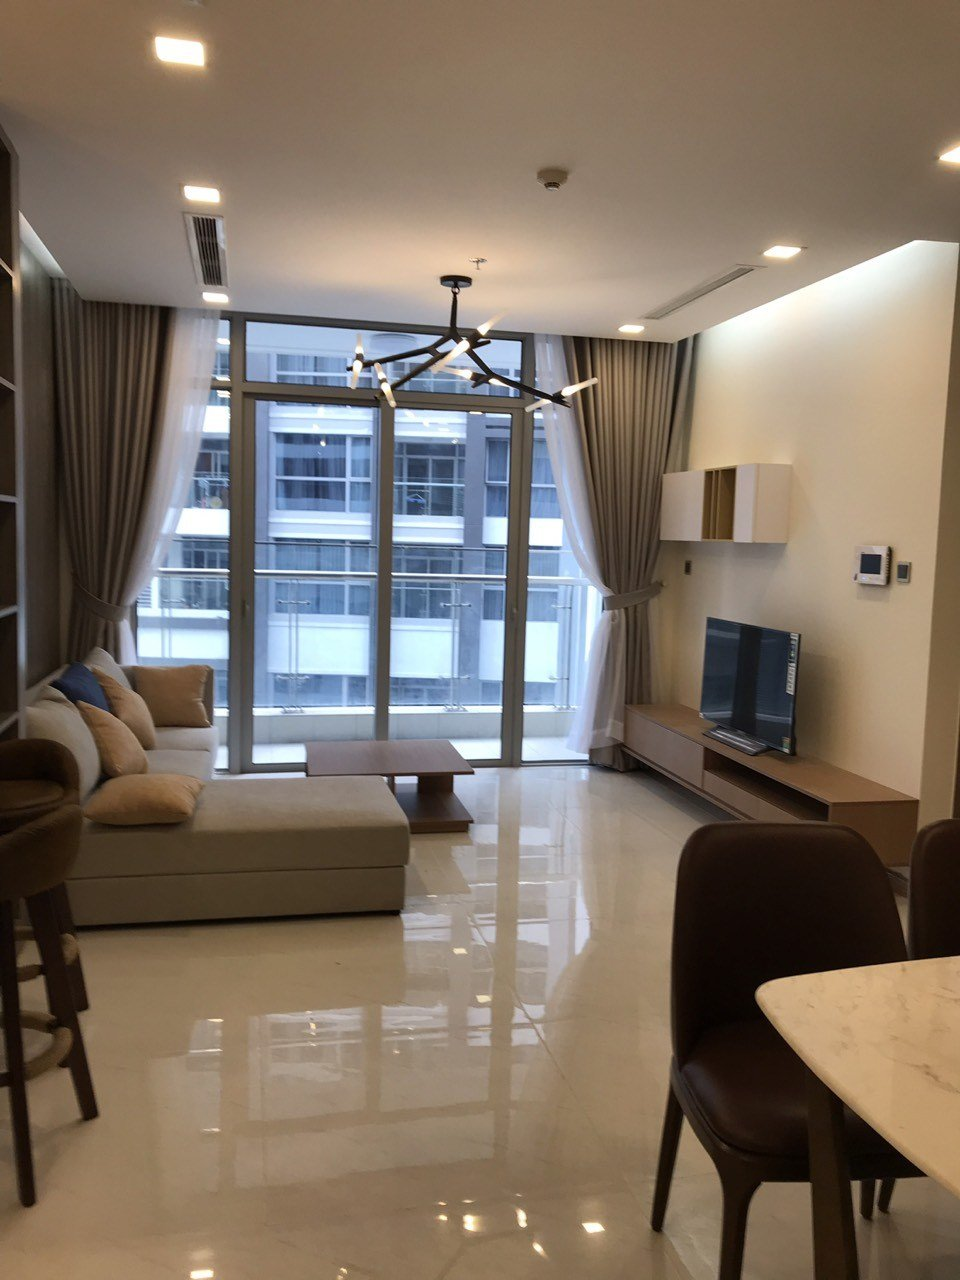 Best 2 Bedrooms Apartment For Rent In Vinhomes Central Park With Pictures Original 1024 x 768